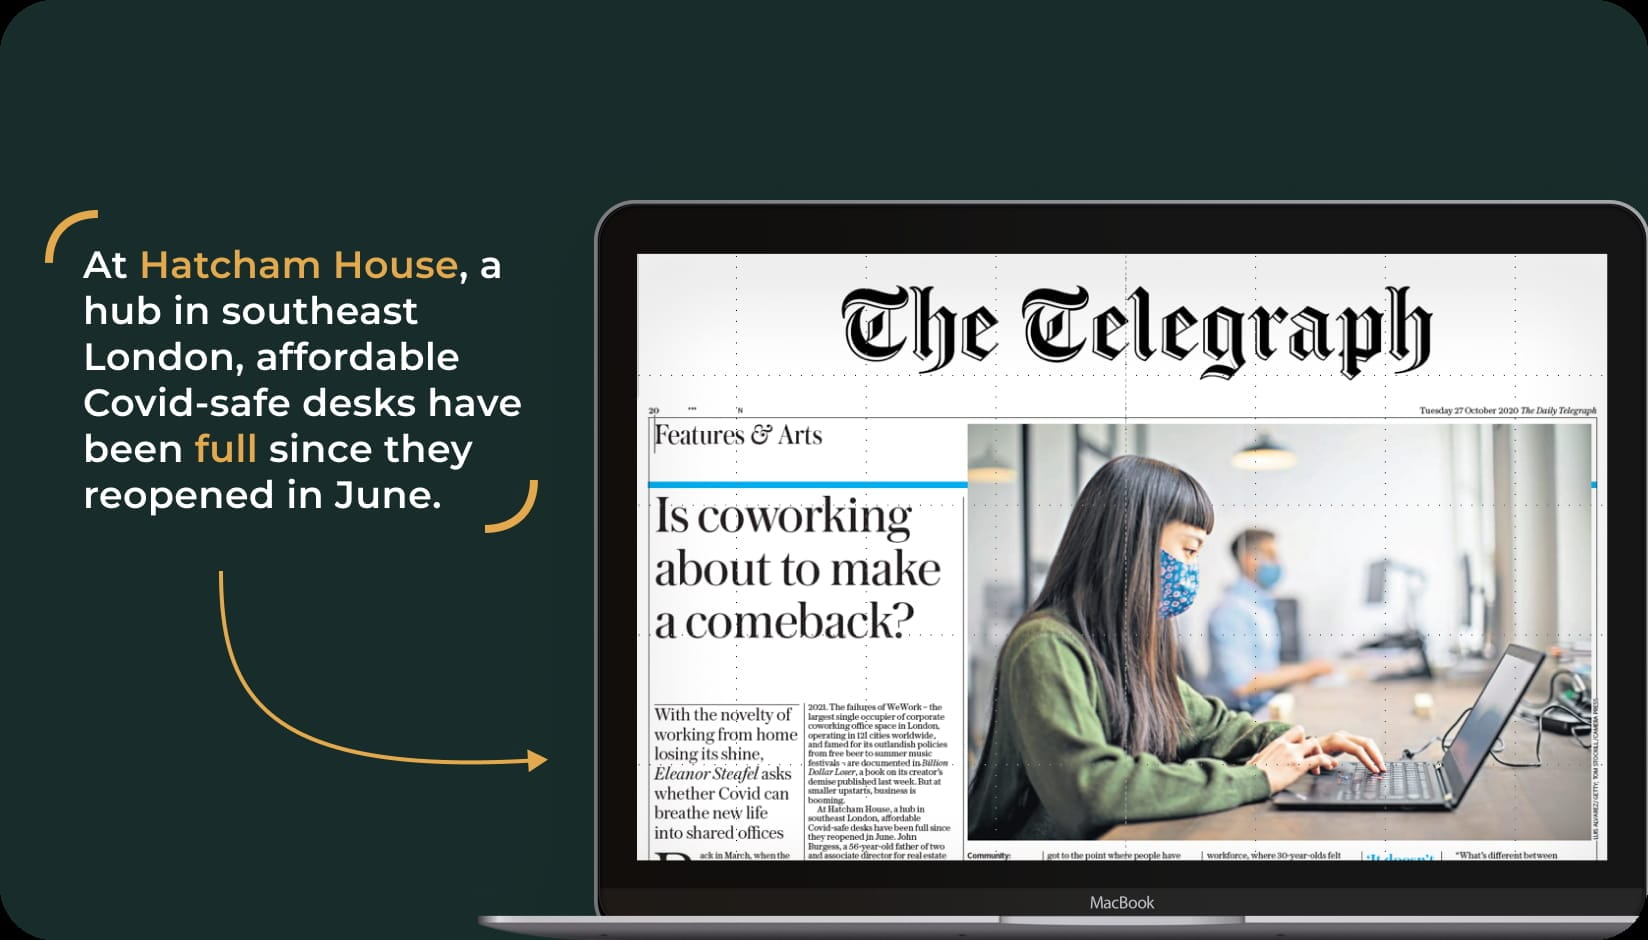 The Telegraph about Hatcham House popularity